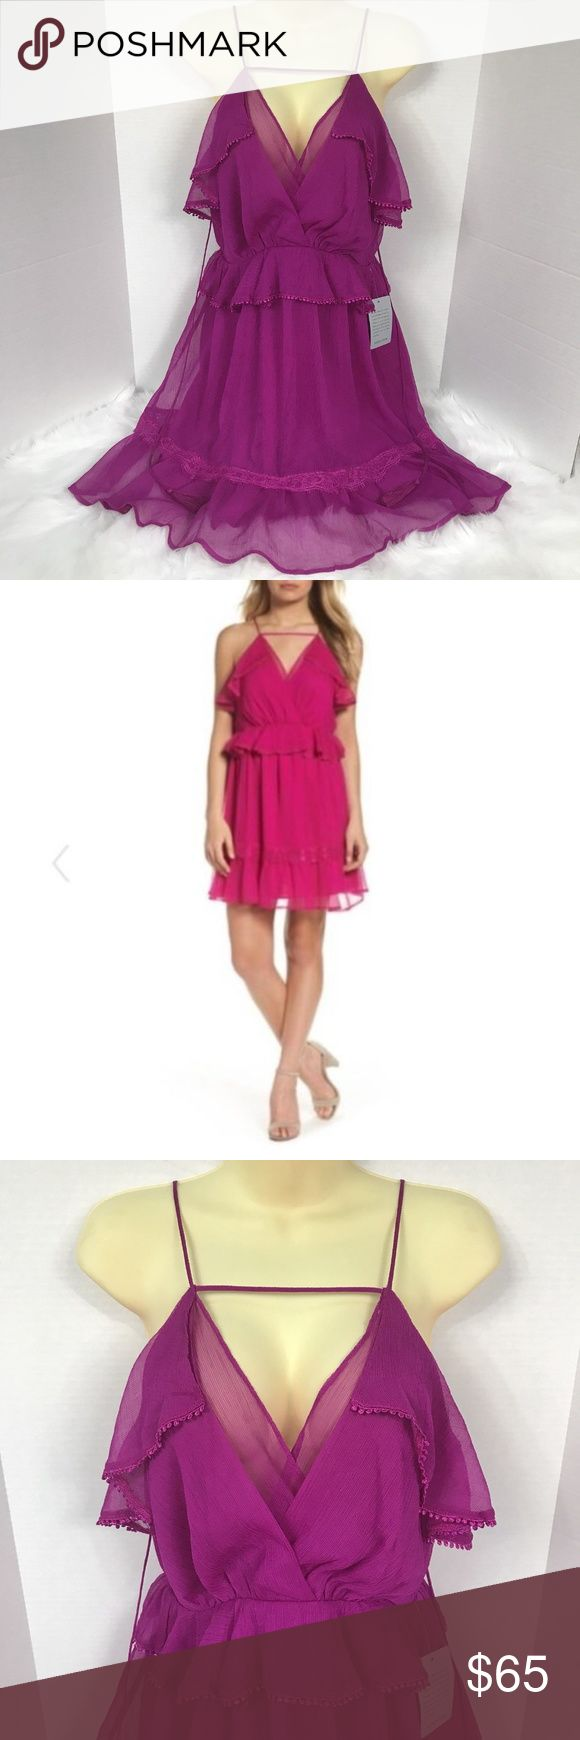 """ADELYN RAE Magenta Ruffle Mini Dress Frill Sz Med ADELYN RAE Magenta Ruffle Mini Dress Frill Lace Sheer Spaghetti Strap V-Neck Size Medium Med M MSRP $138 NWT  Adelyn Rae Ruffle Mini dress - Magenta. Lacy accents highlight the perfectly placed ruffles of a gauzy mini dress that's ready for a party.  - 35"""" length  - Surplice neckline - Sleeveless - Lined - 100% polyester - Hand wash, line dry  Flat lay measurements in inches:  Armpit to armpit: 20 Waist: 15 Top of Back V neckline to hem: 25…"""